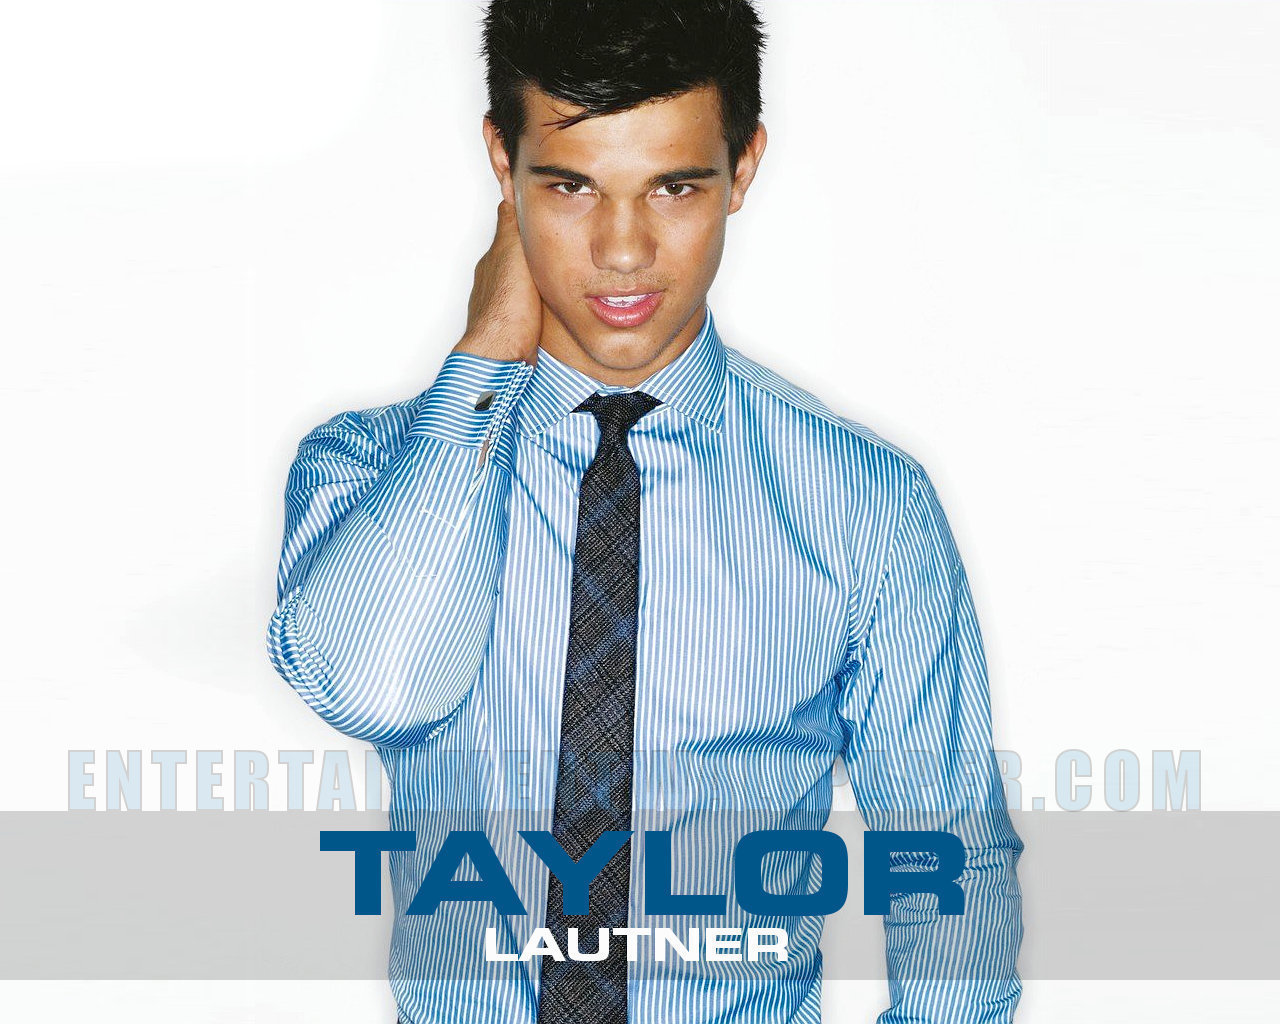 12959 download wallpaper People, Actors, Men, Taylor Lautner screensavers and pictures for free